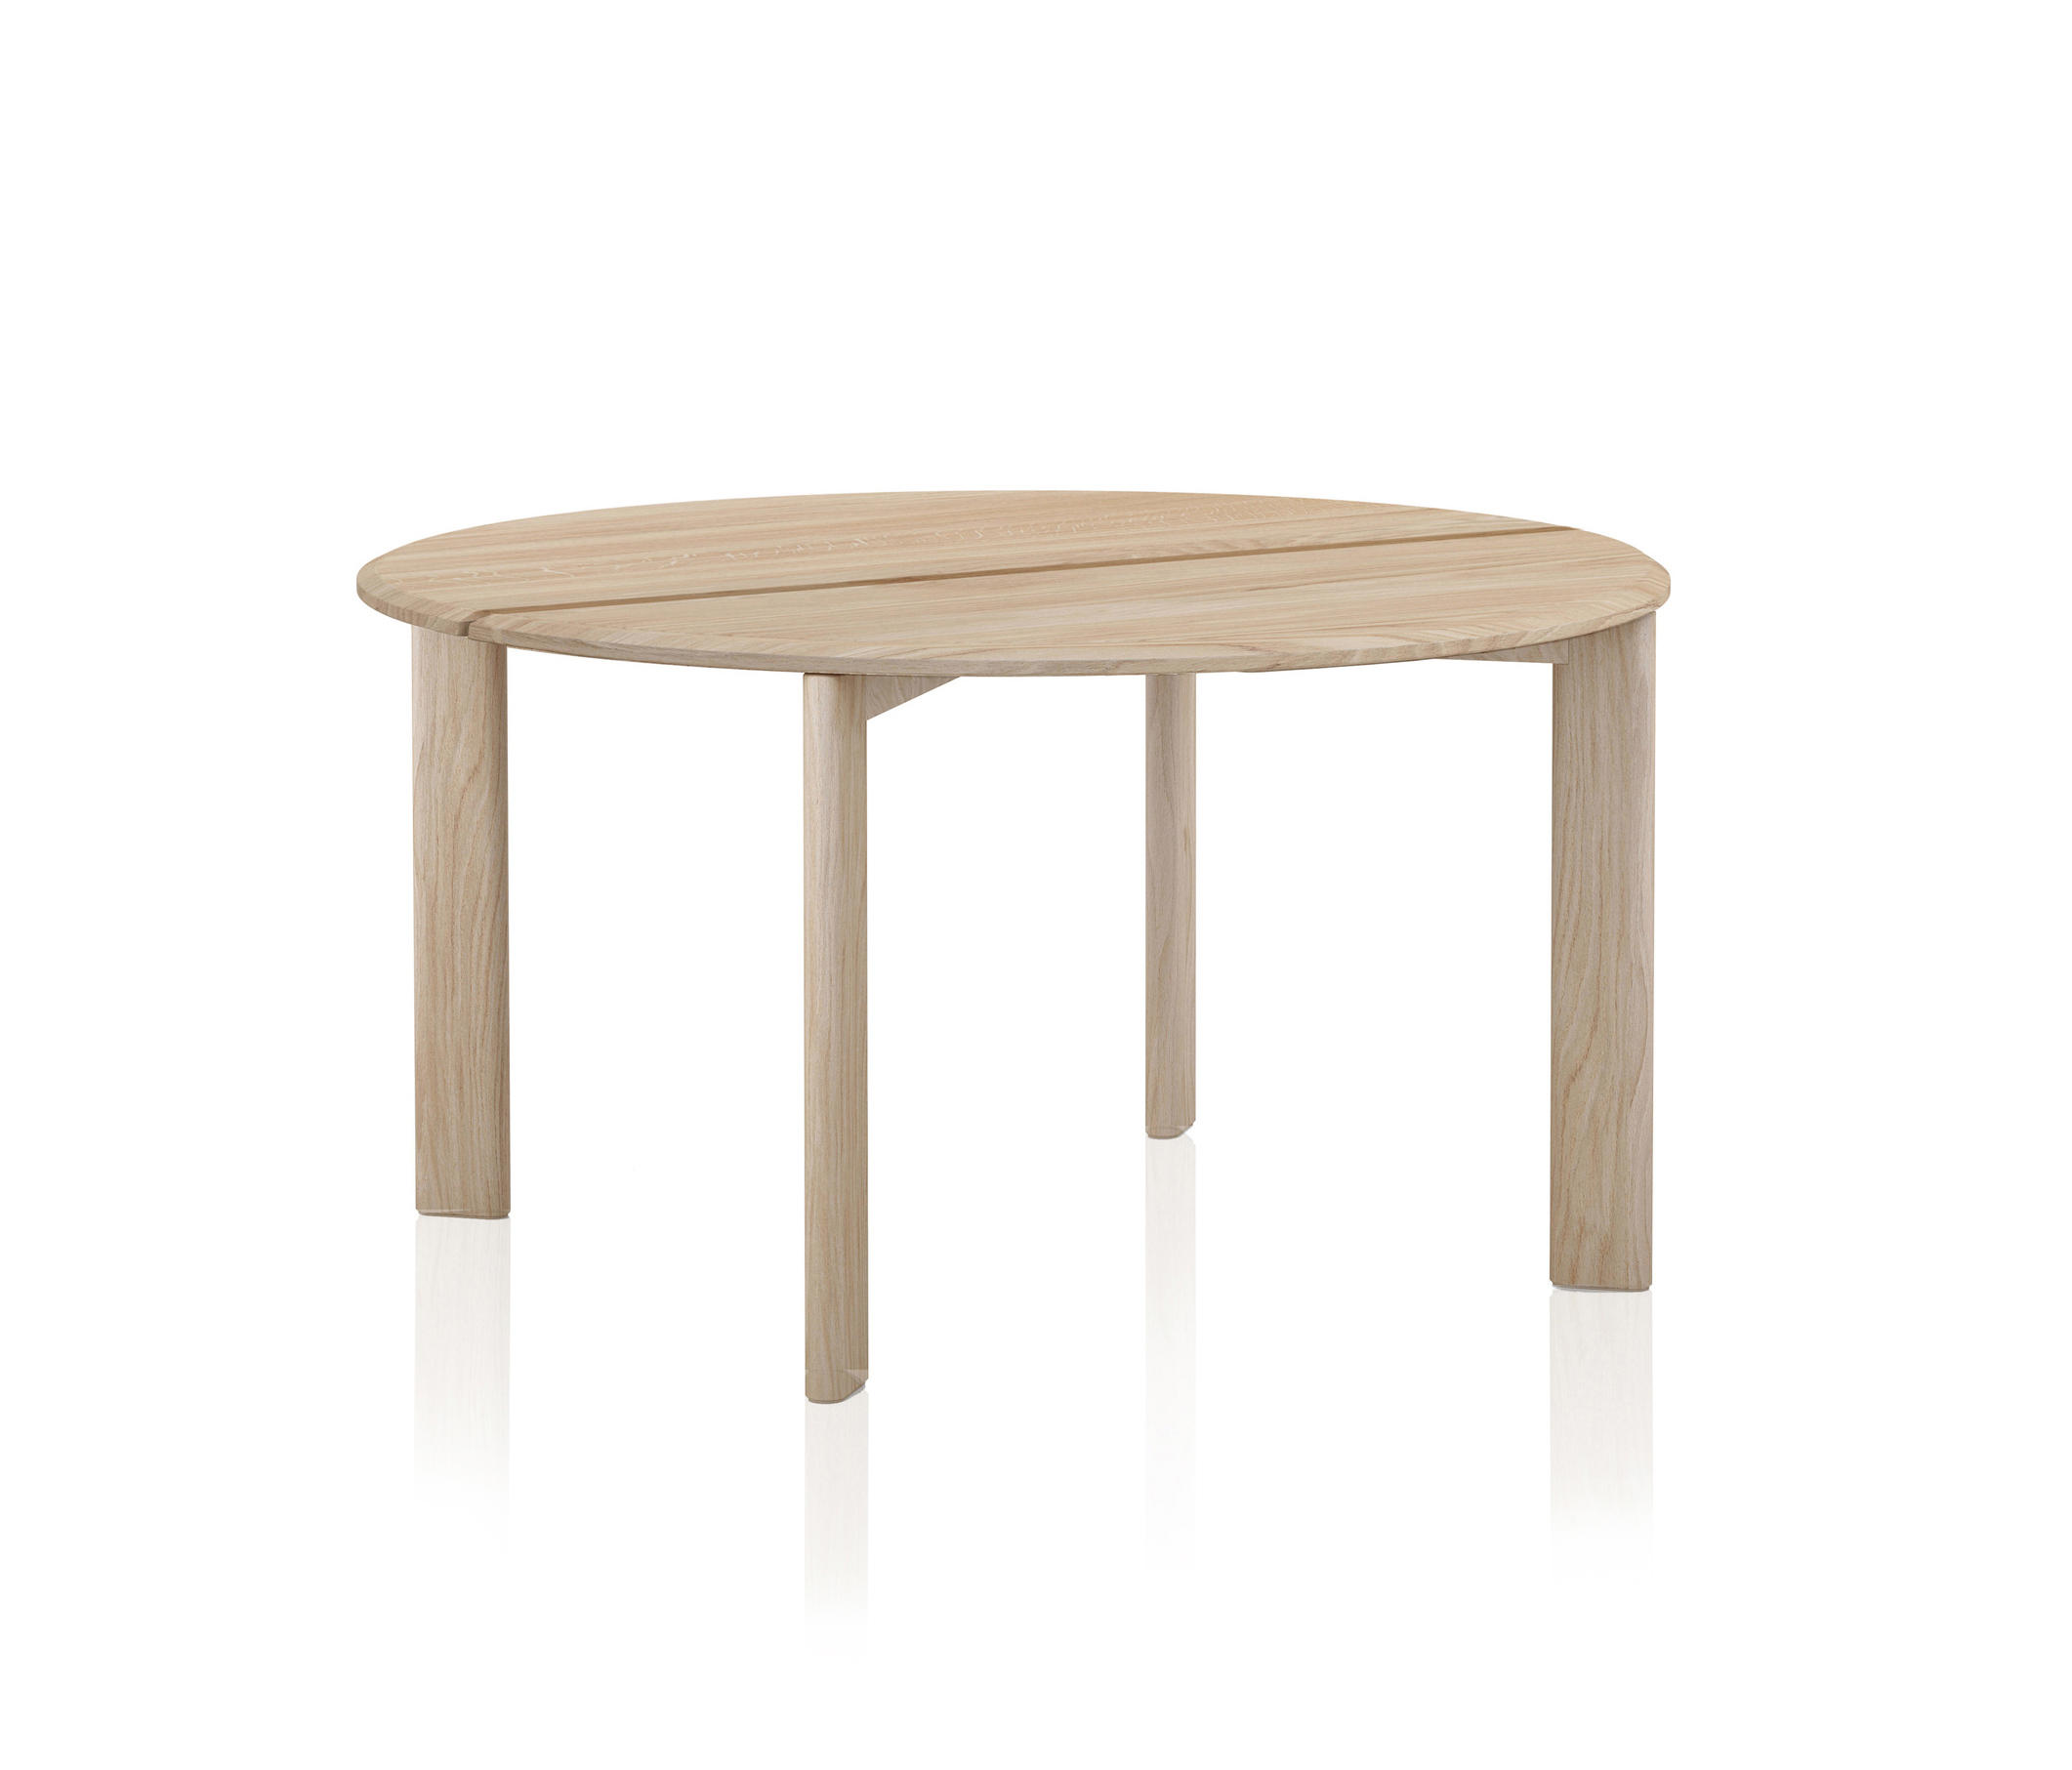 Kotai Round Dining Table Dining Tables From Expormim Architonic # Table De Jardin Geneve